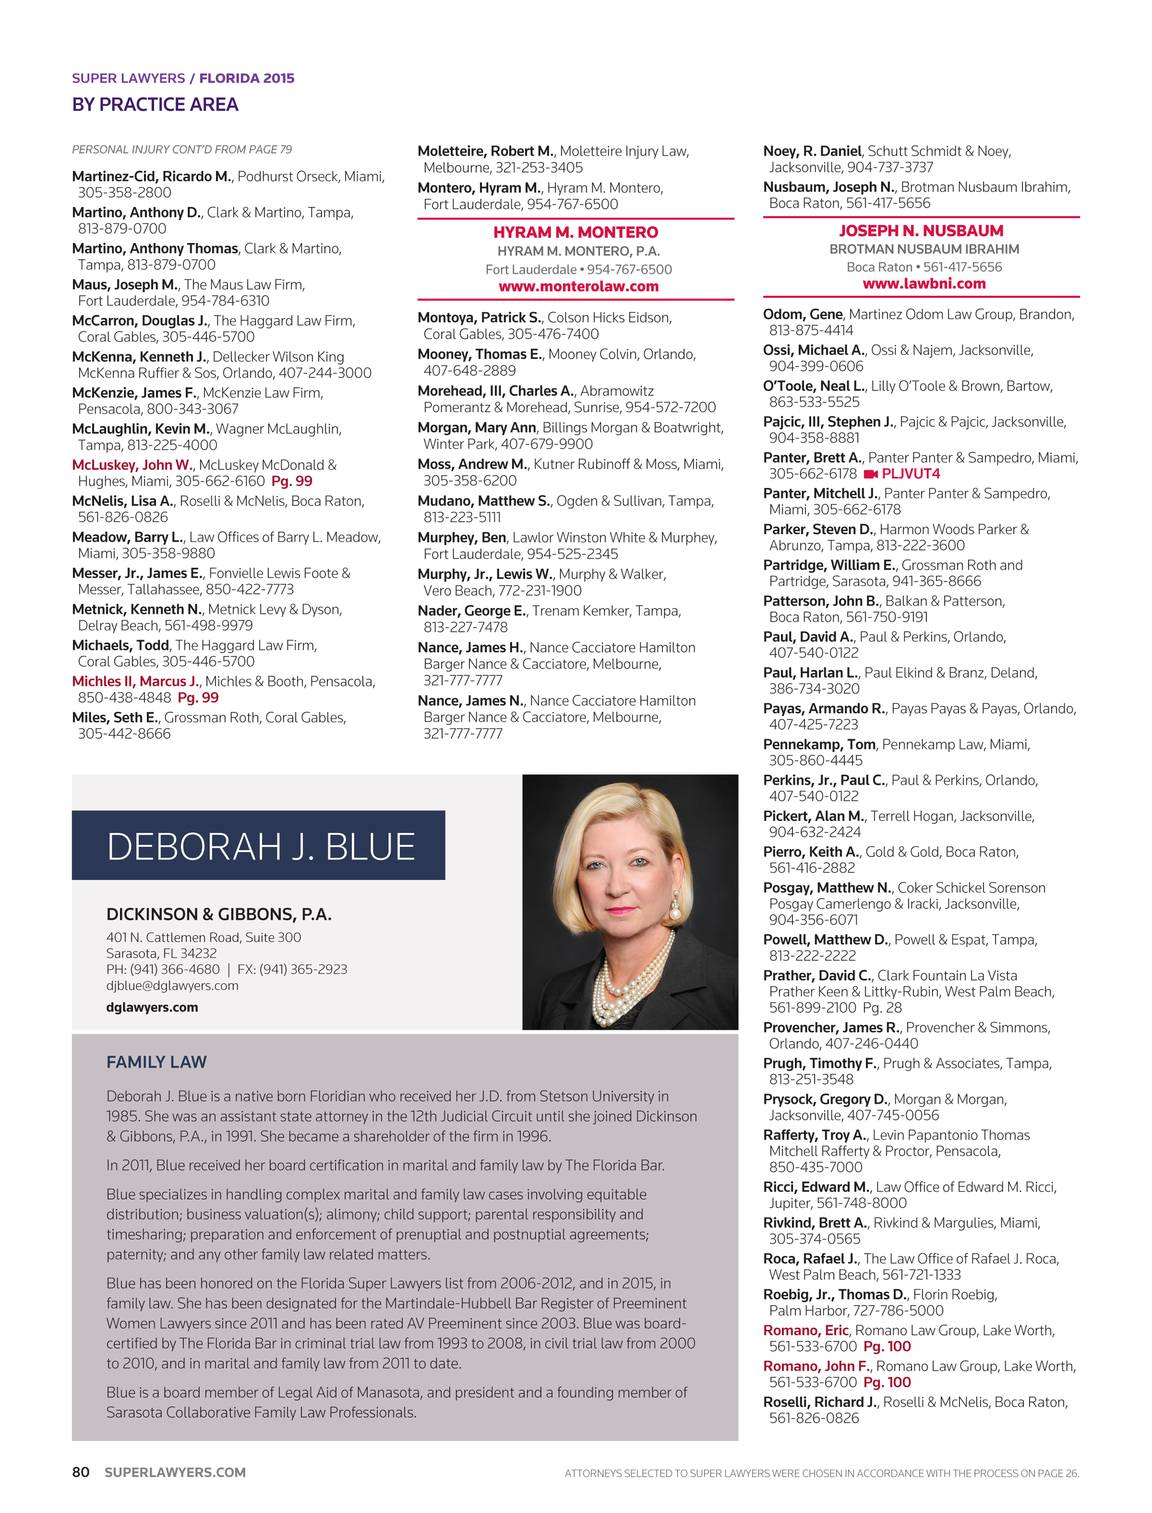 Super Lawyers Florida 2015 Page 79